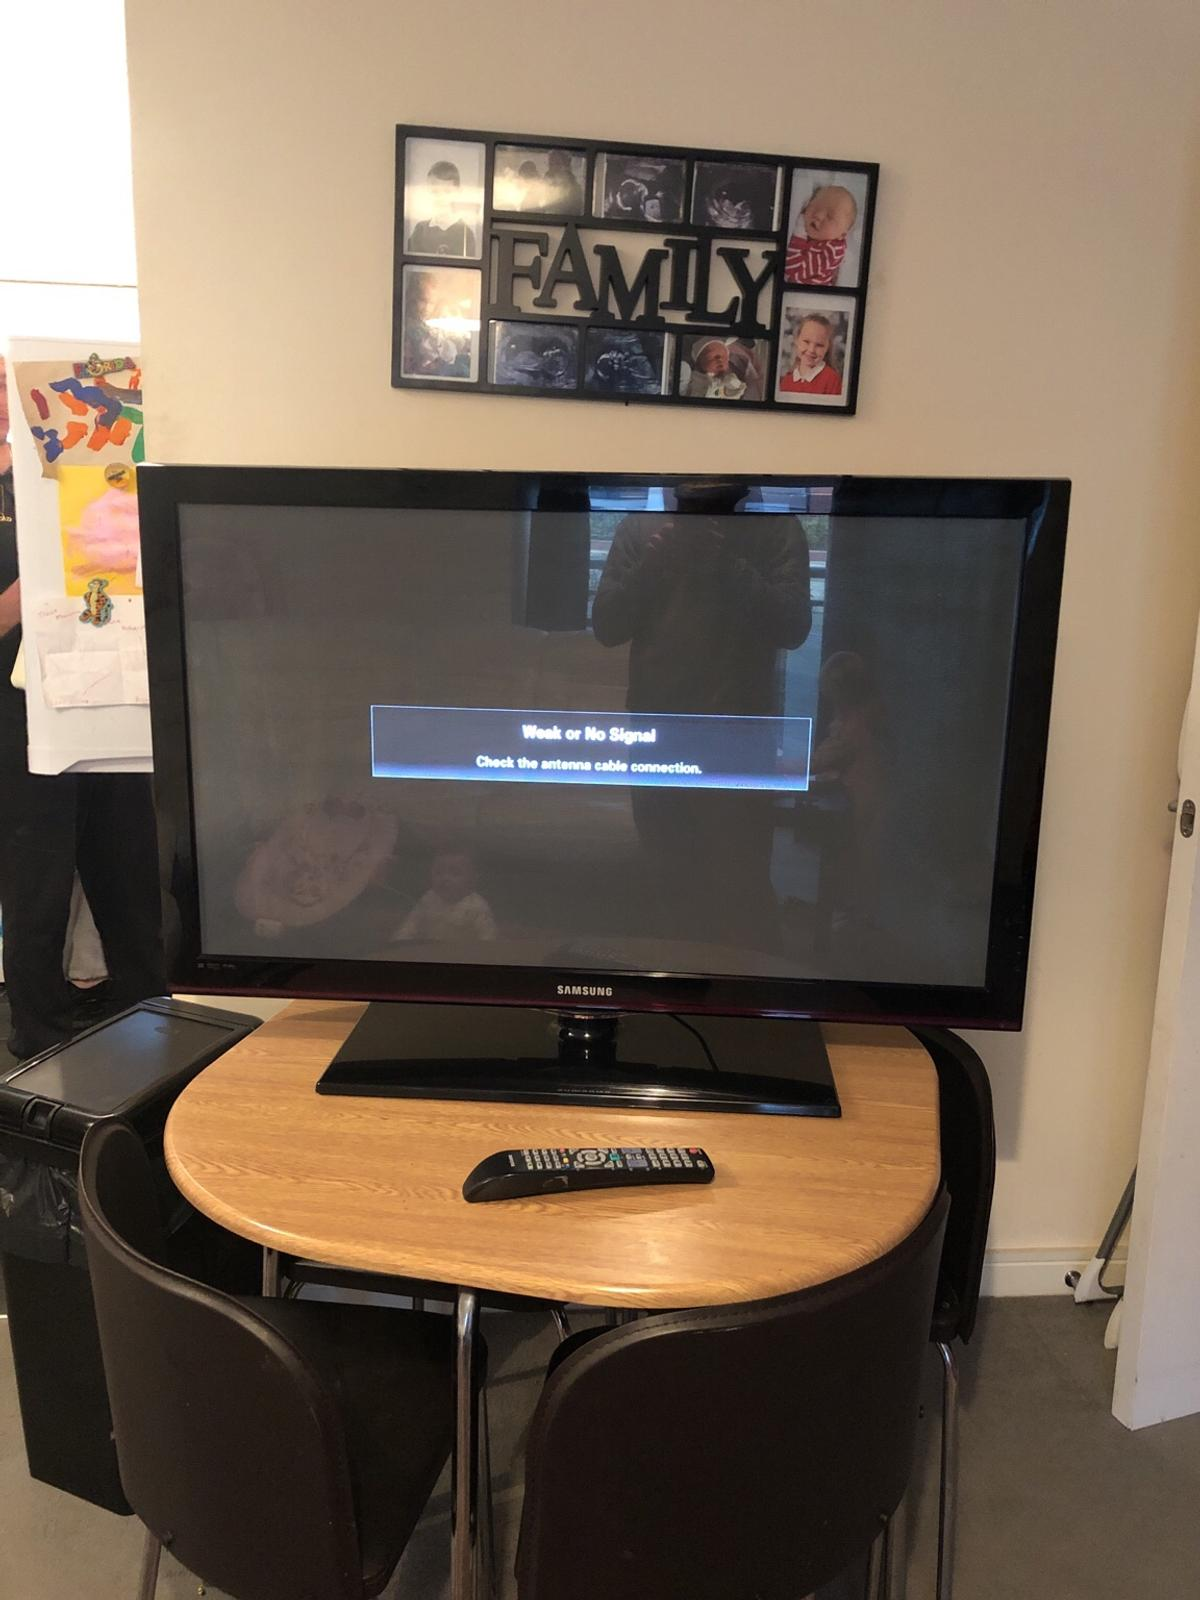 Sansung 42' flat screen tv in Middle Weald for £70 00 for